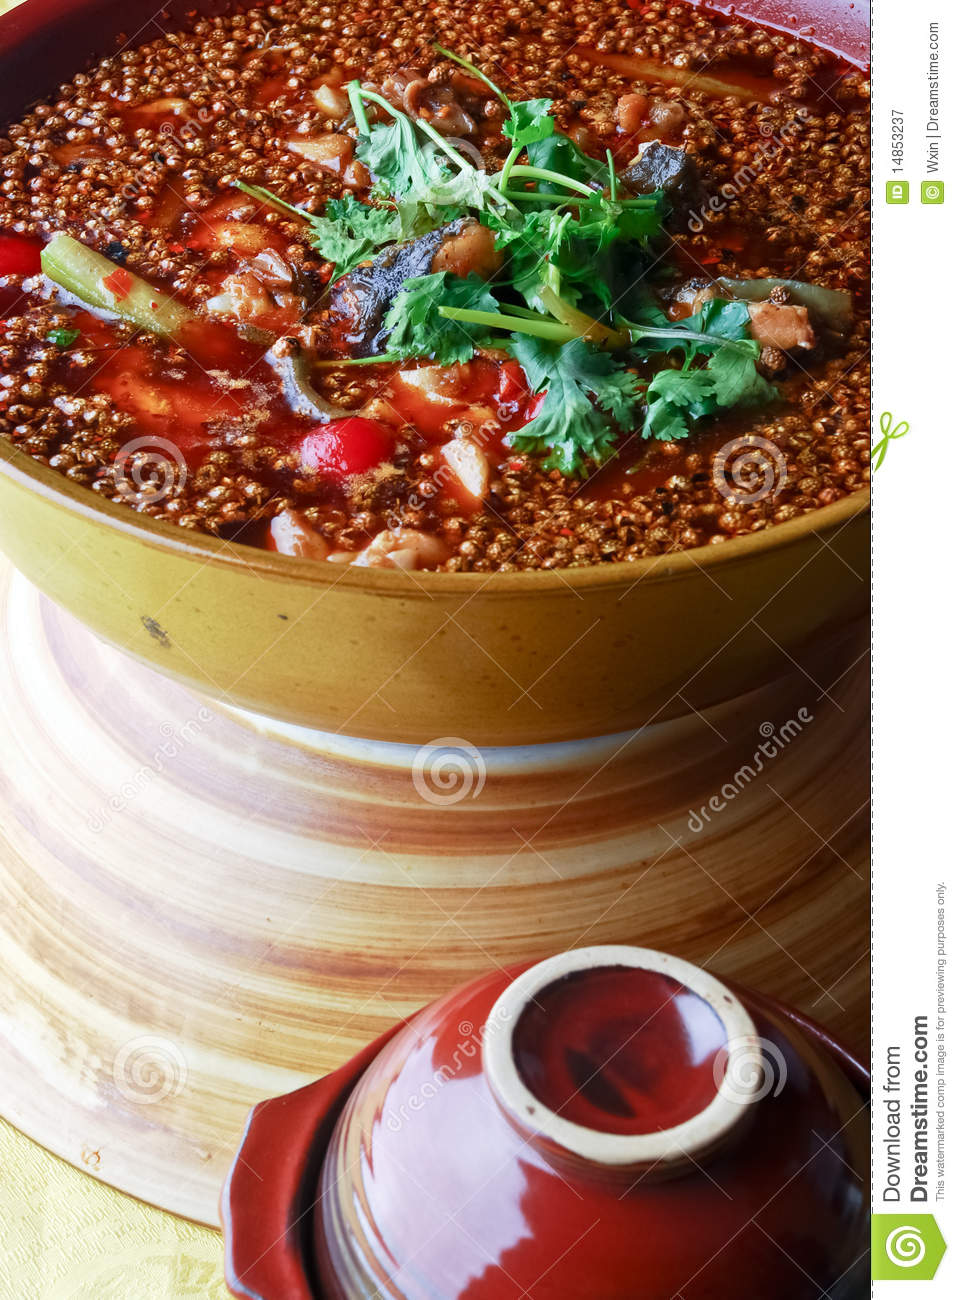 Chinese food-- water-boiled fish